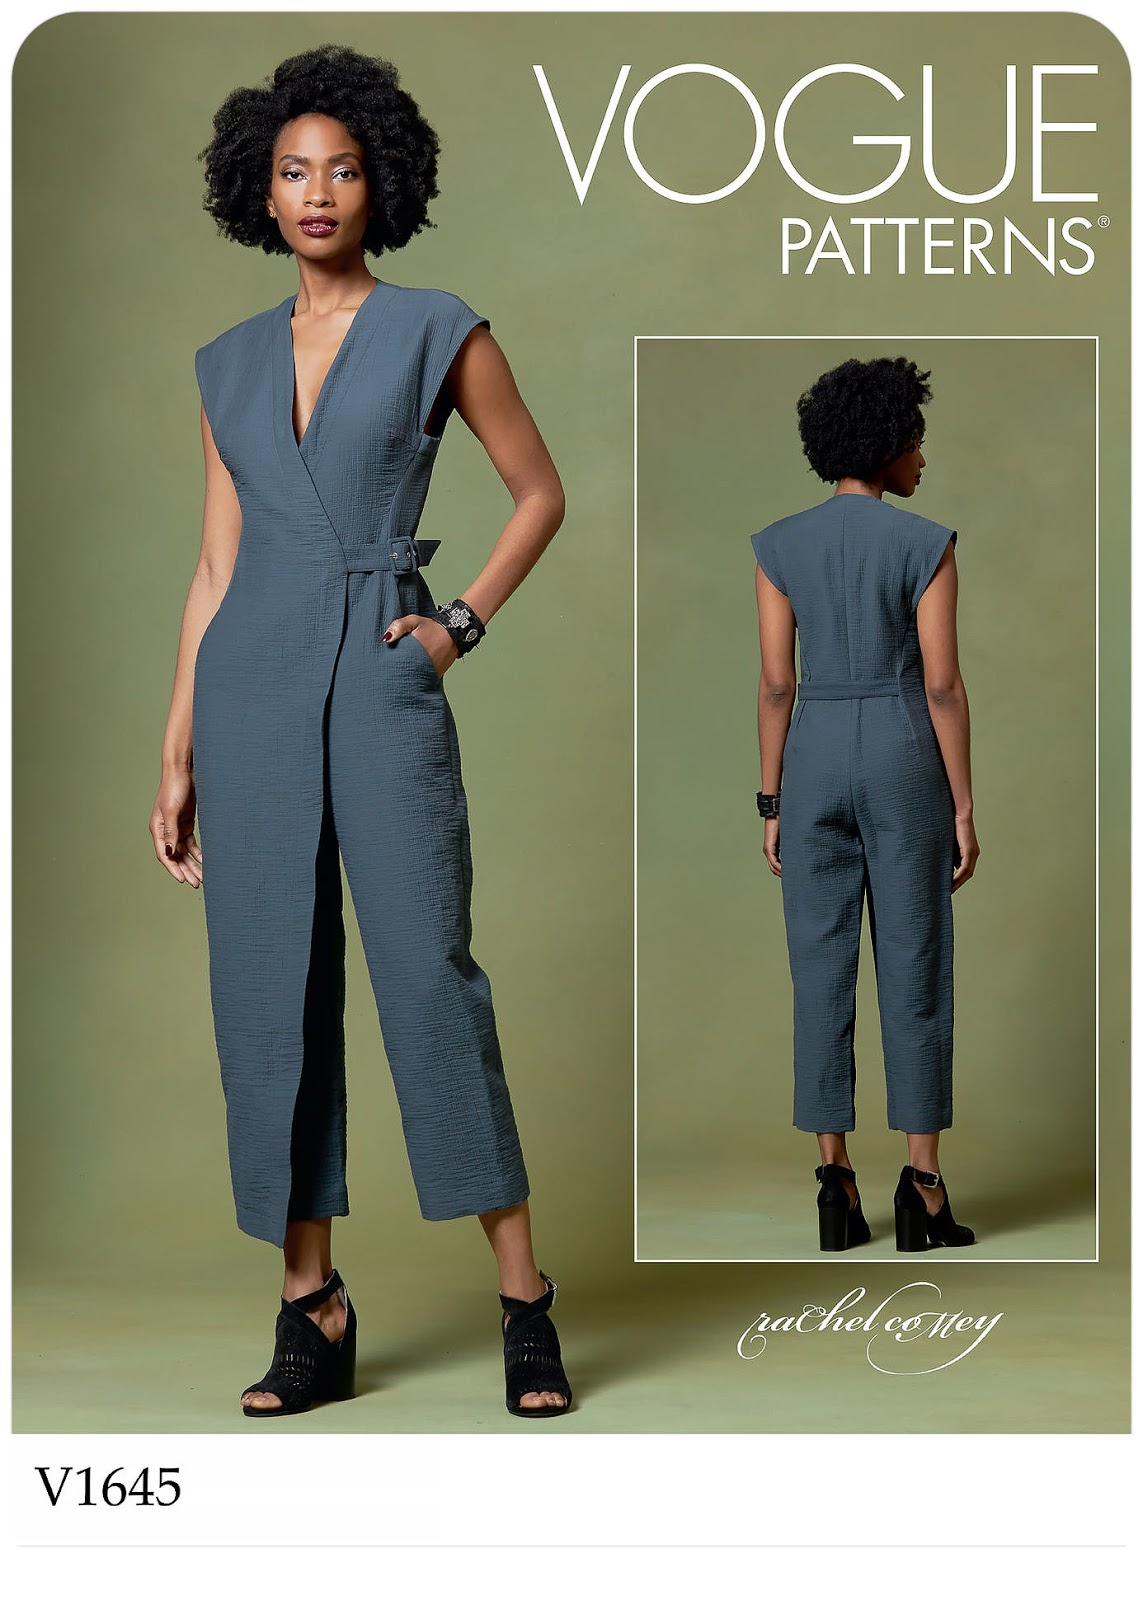 Vogue Patterns 1645 - #V1645